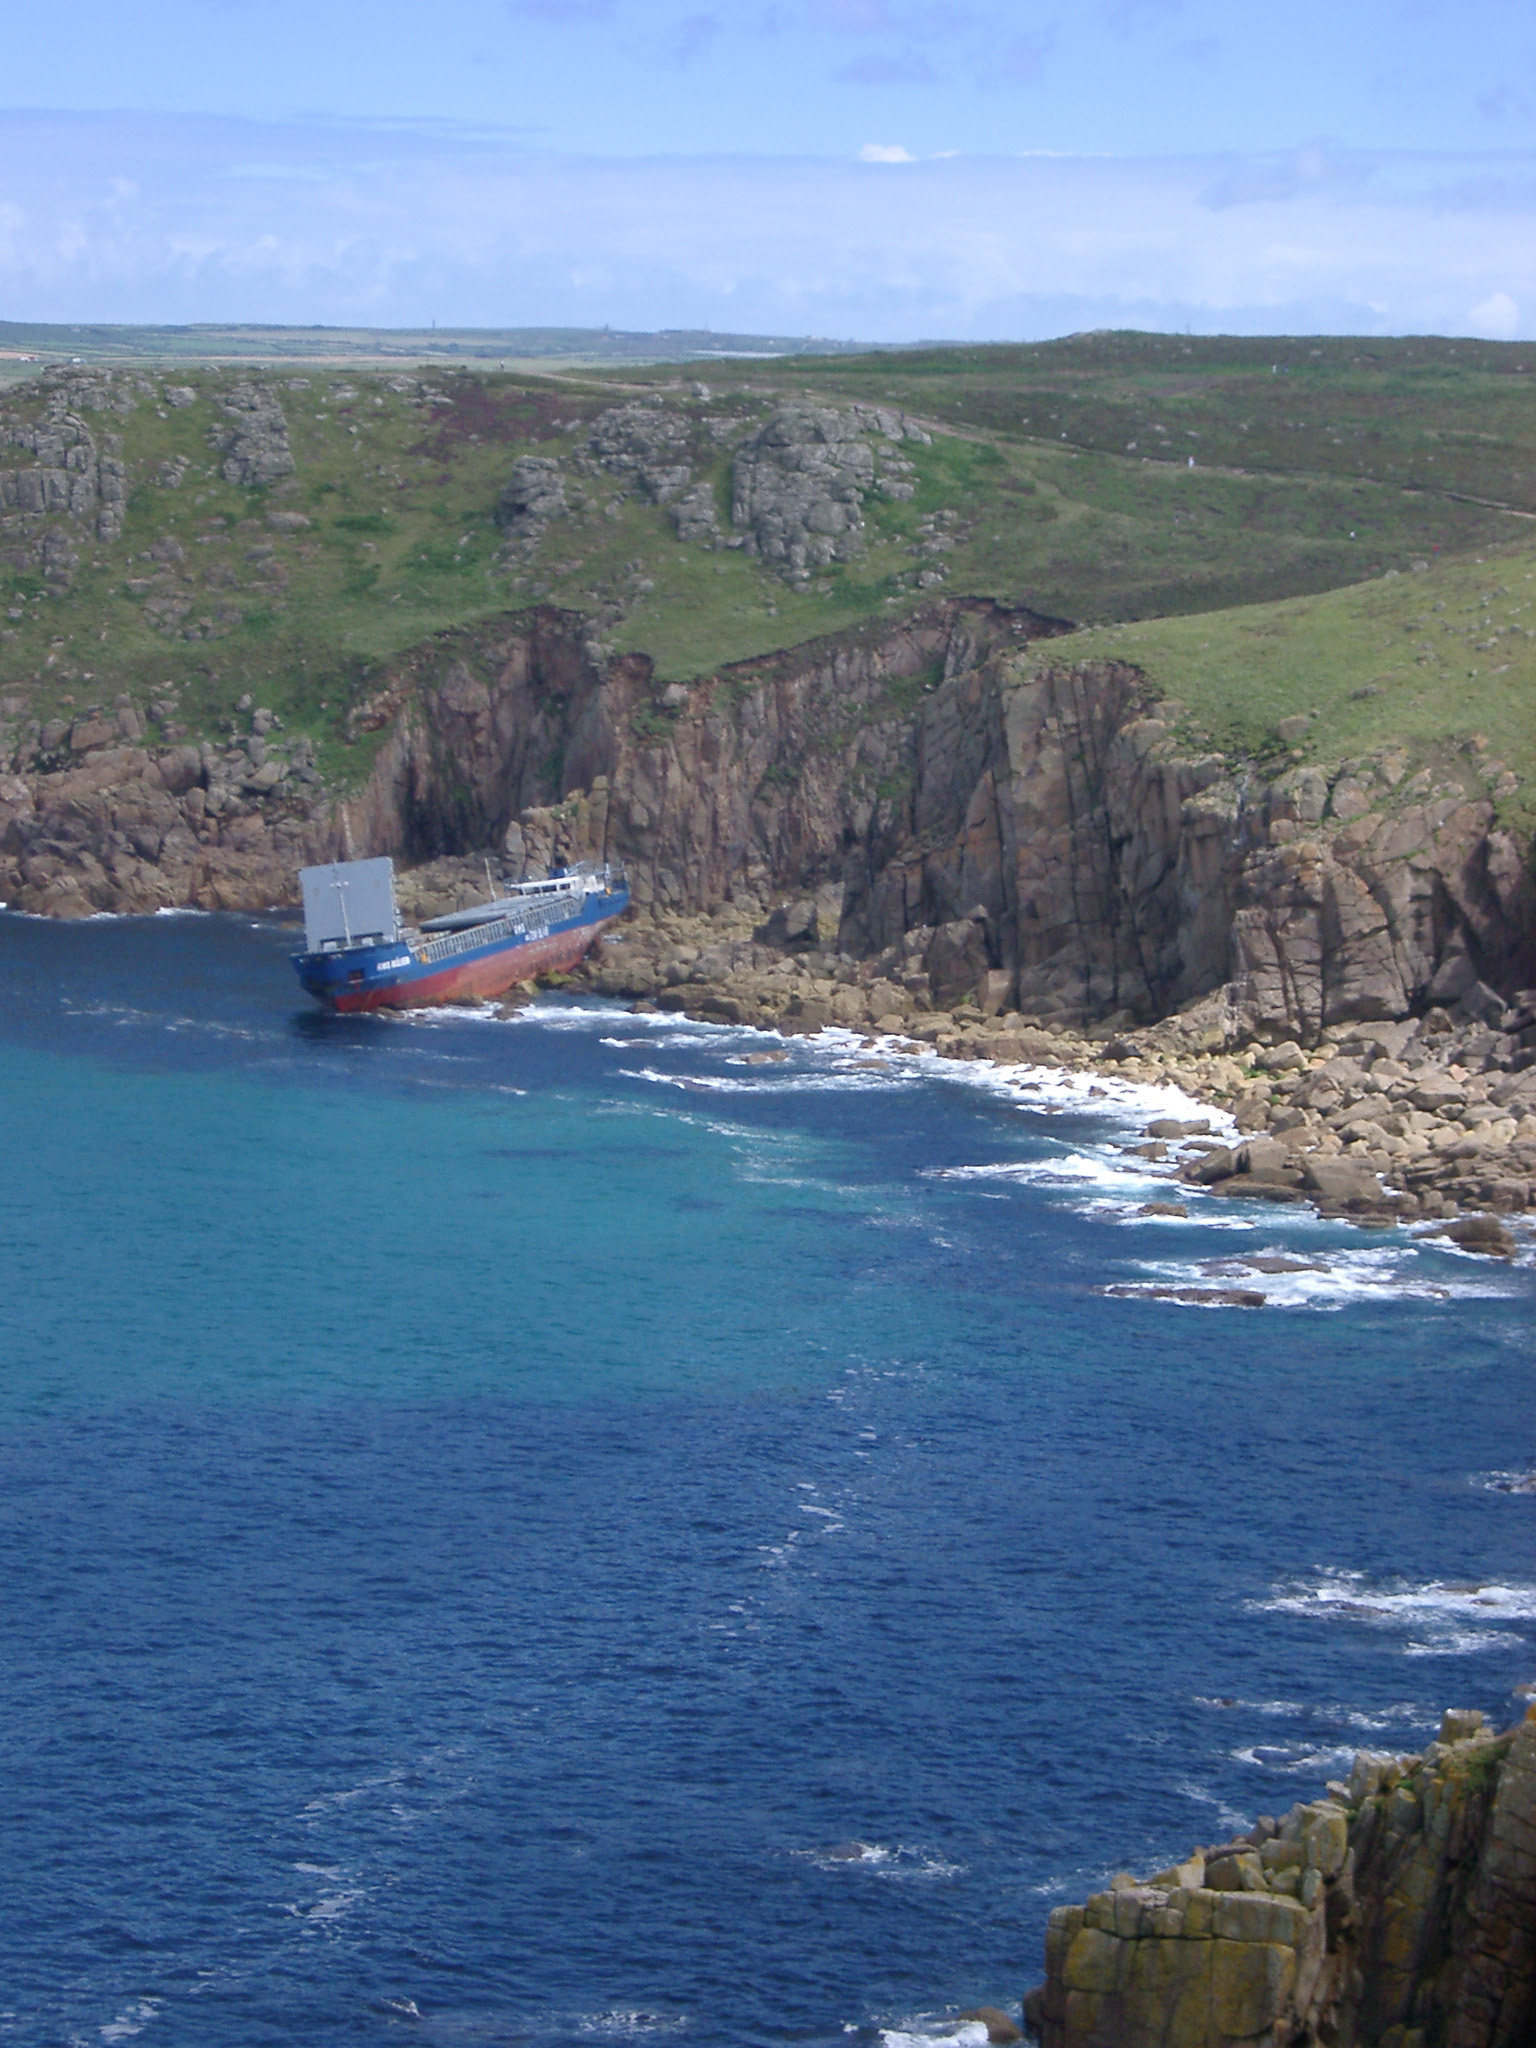 a commercial vessel a wrecked off the treacherous cornish coast - MV RMS Mulheim